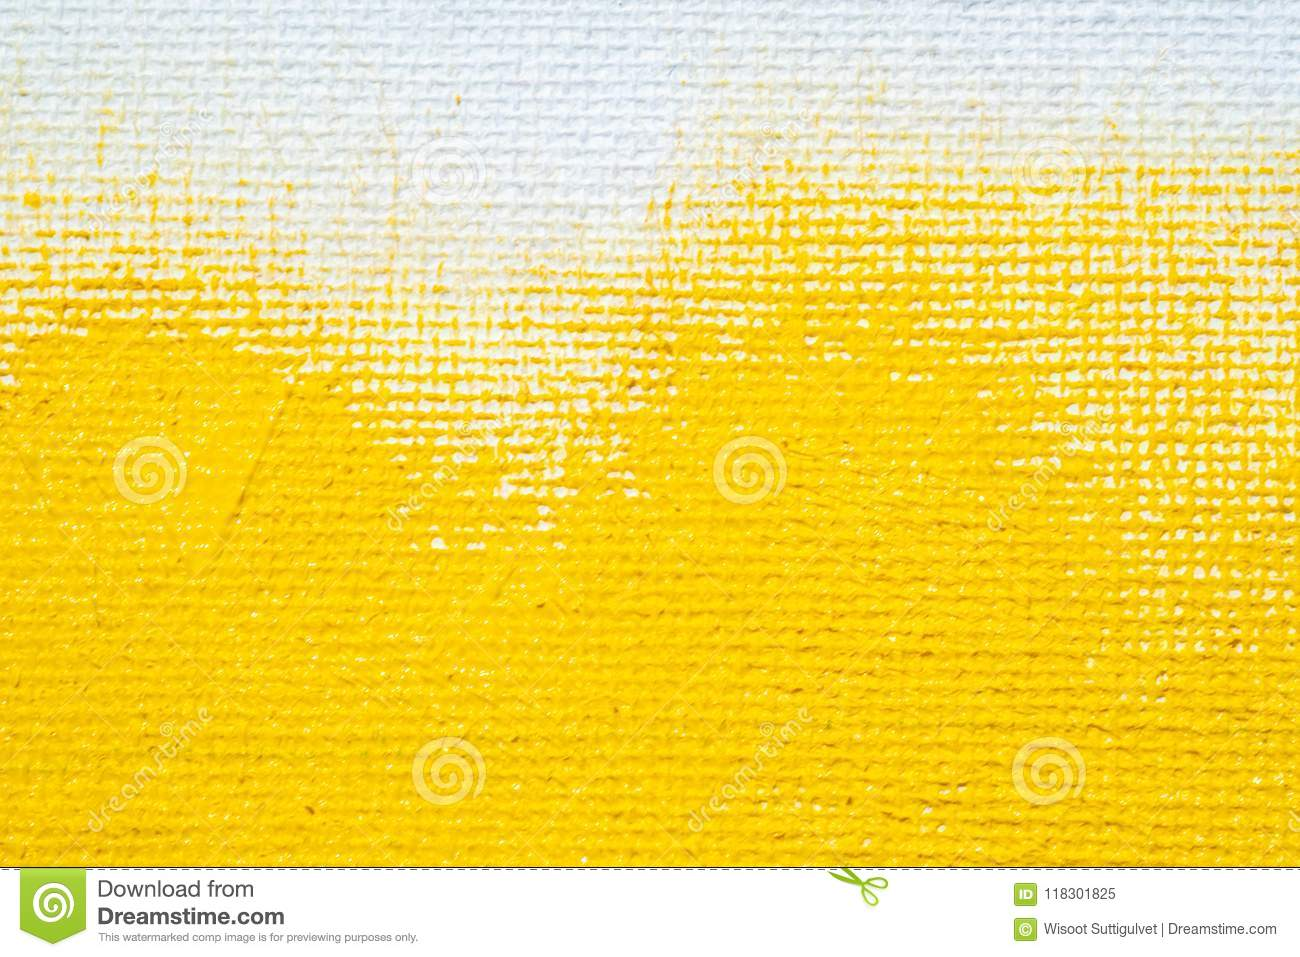 Abstract yellow background white grunge border yellow color with white canvas edges, vintage grunge background texture